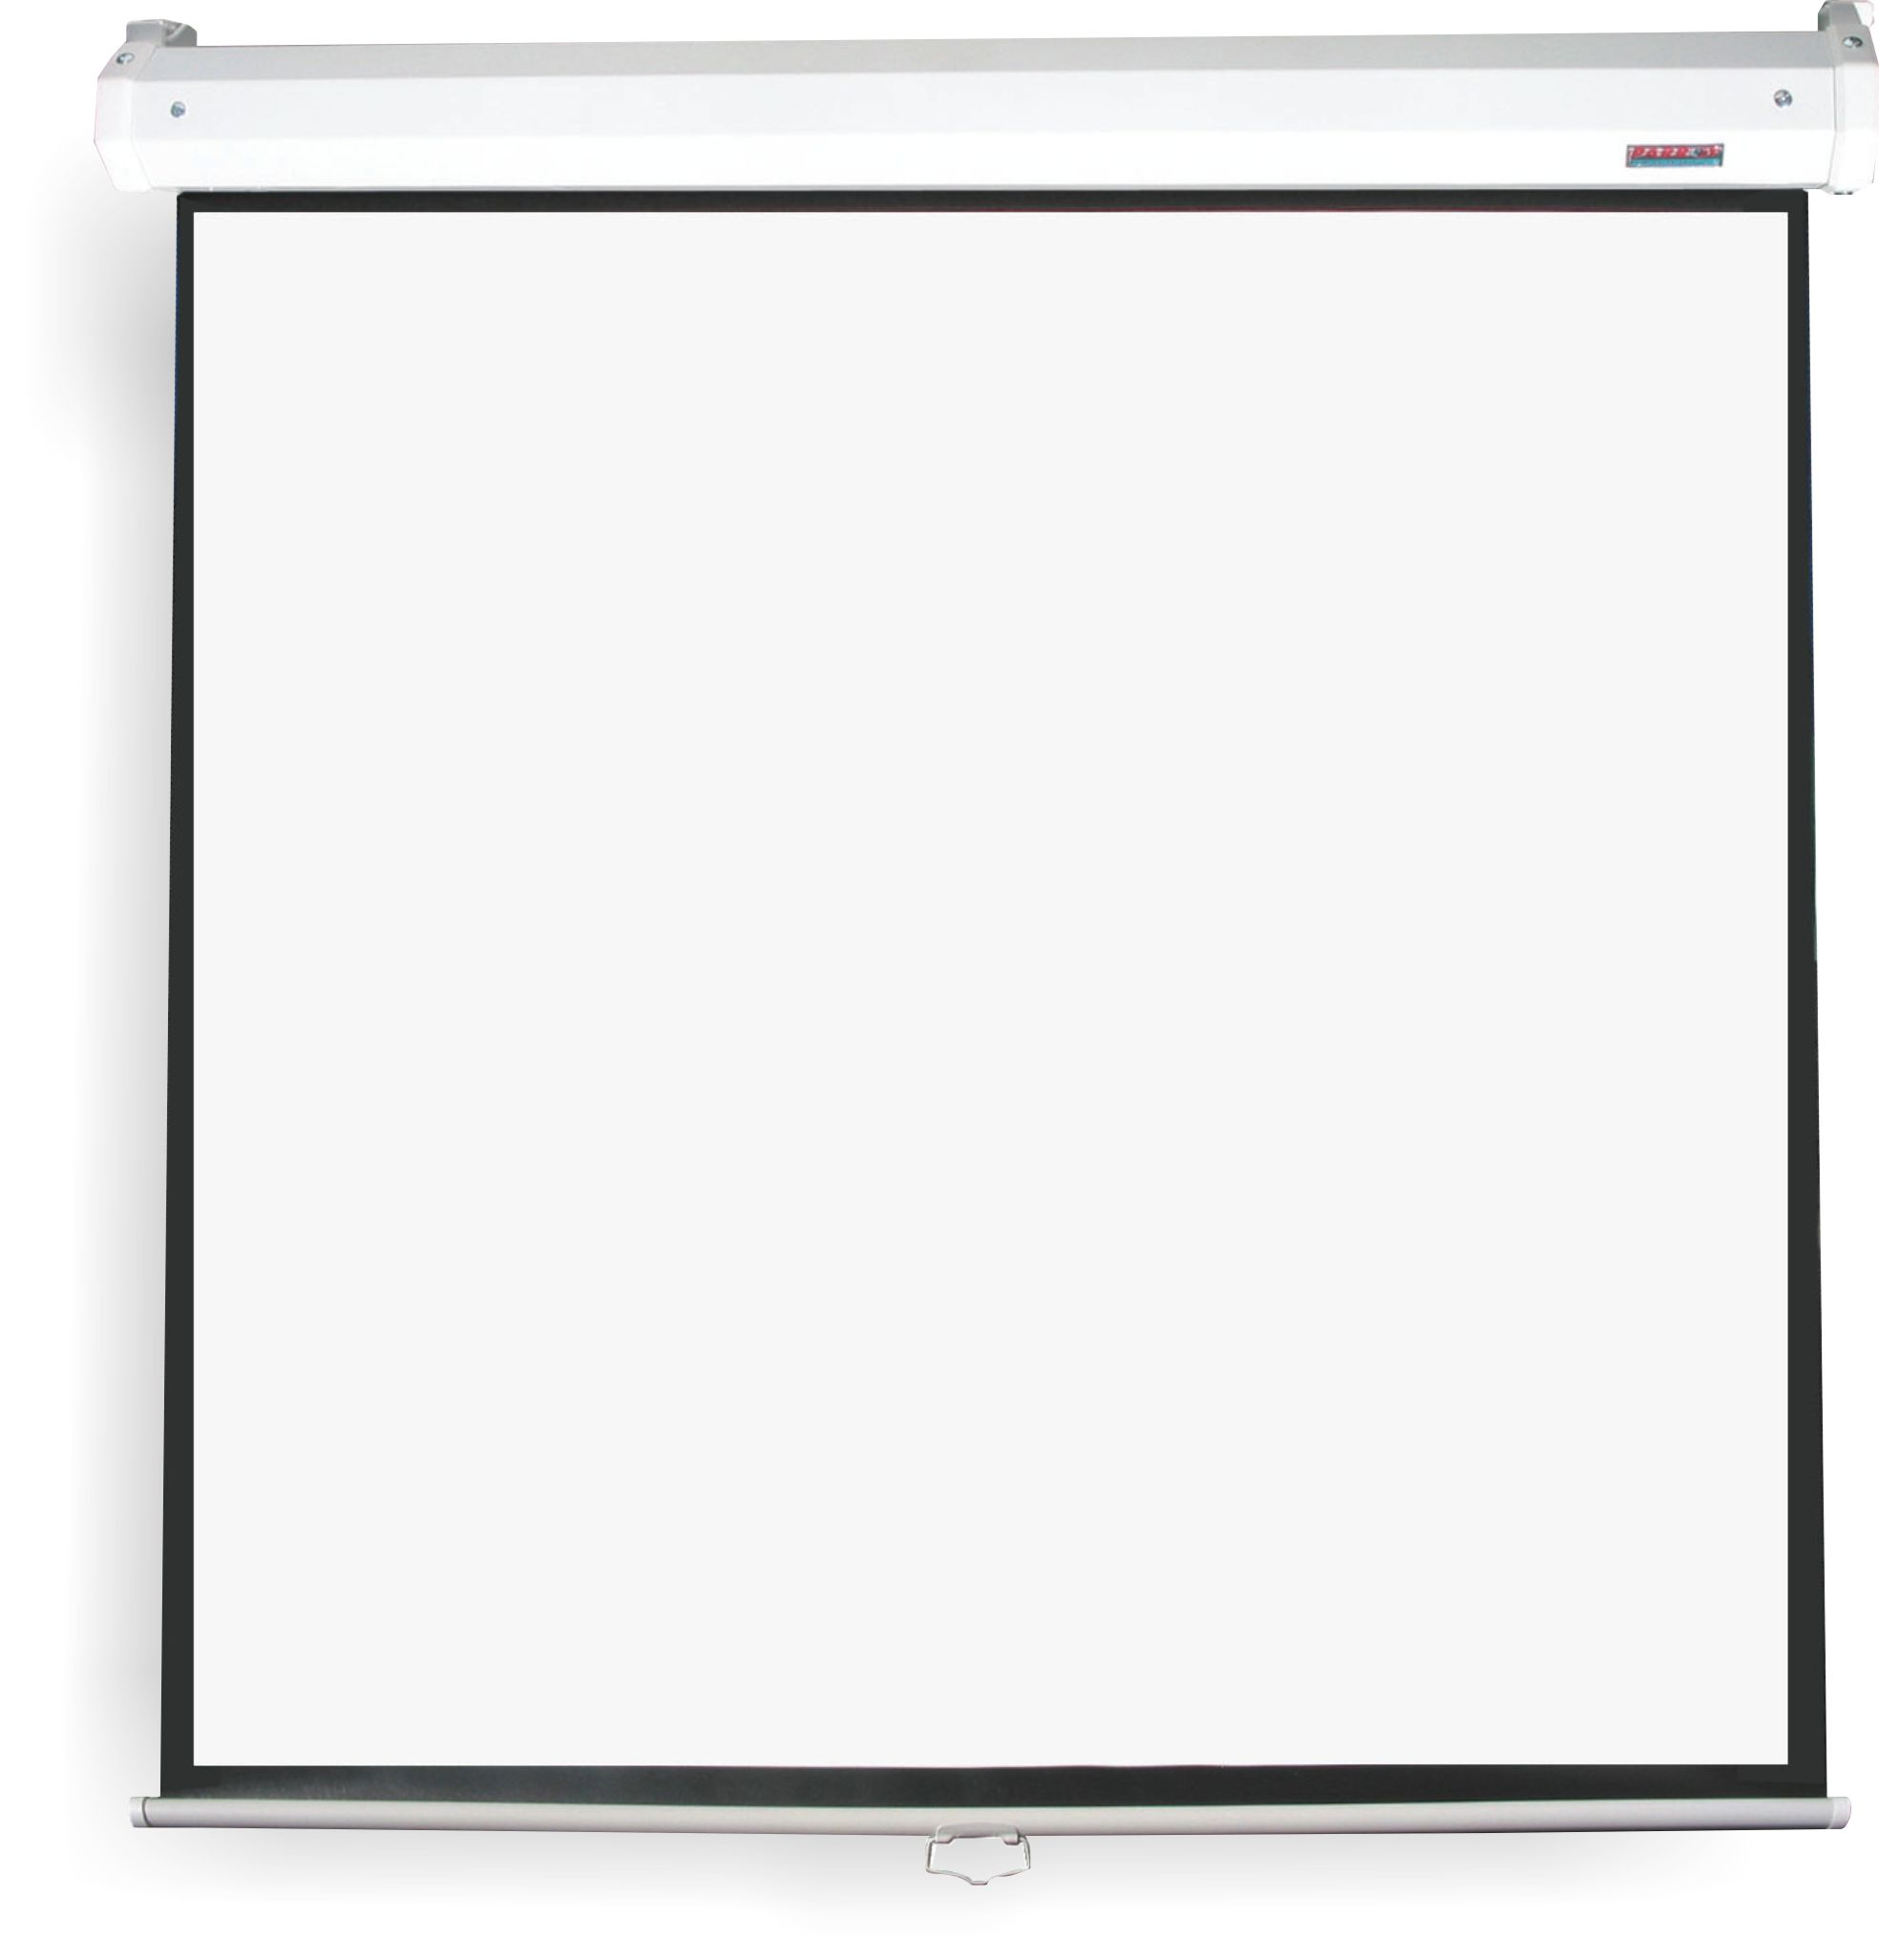 Projector screens pulldown projection screens 16 9 for Motorized drop down projector screen